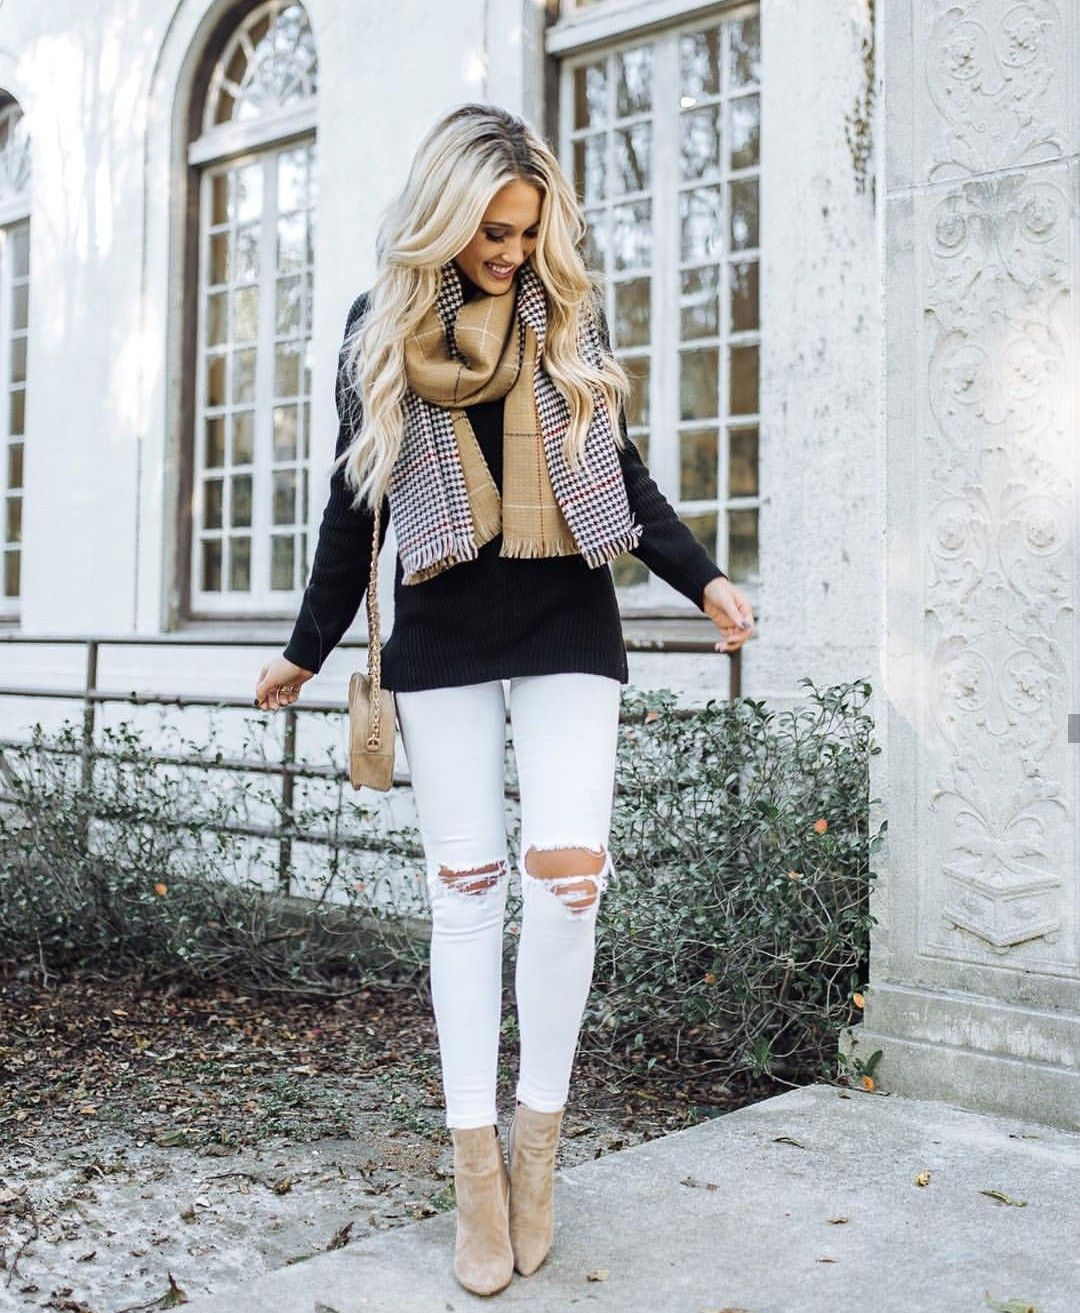 Fashion style With outfits leggings inspiration to try for woman